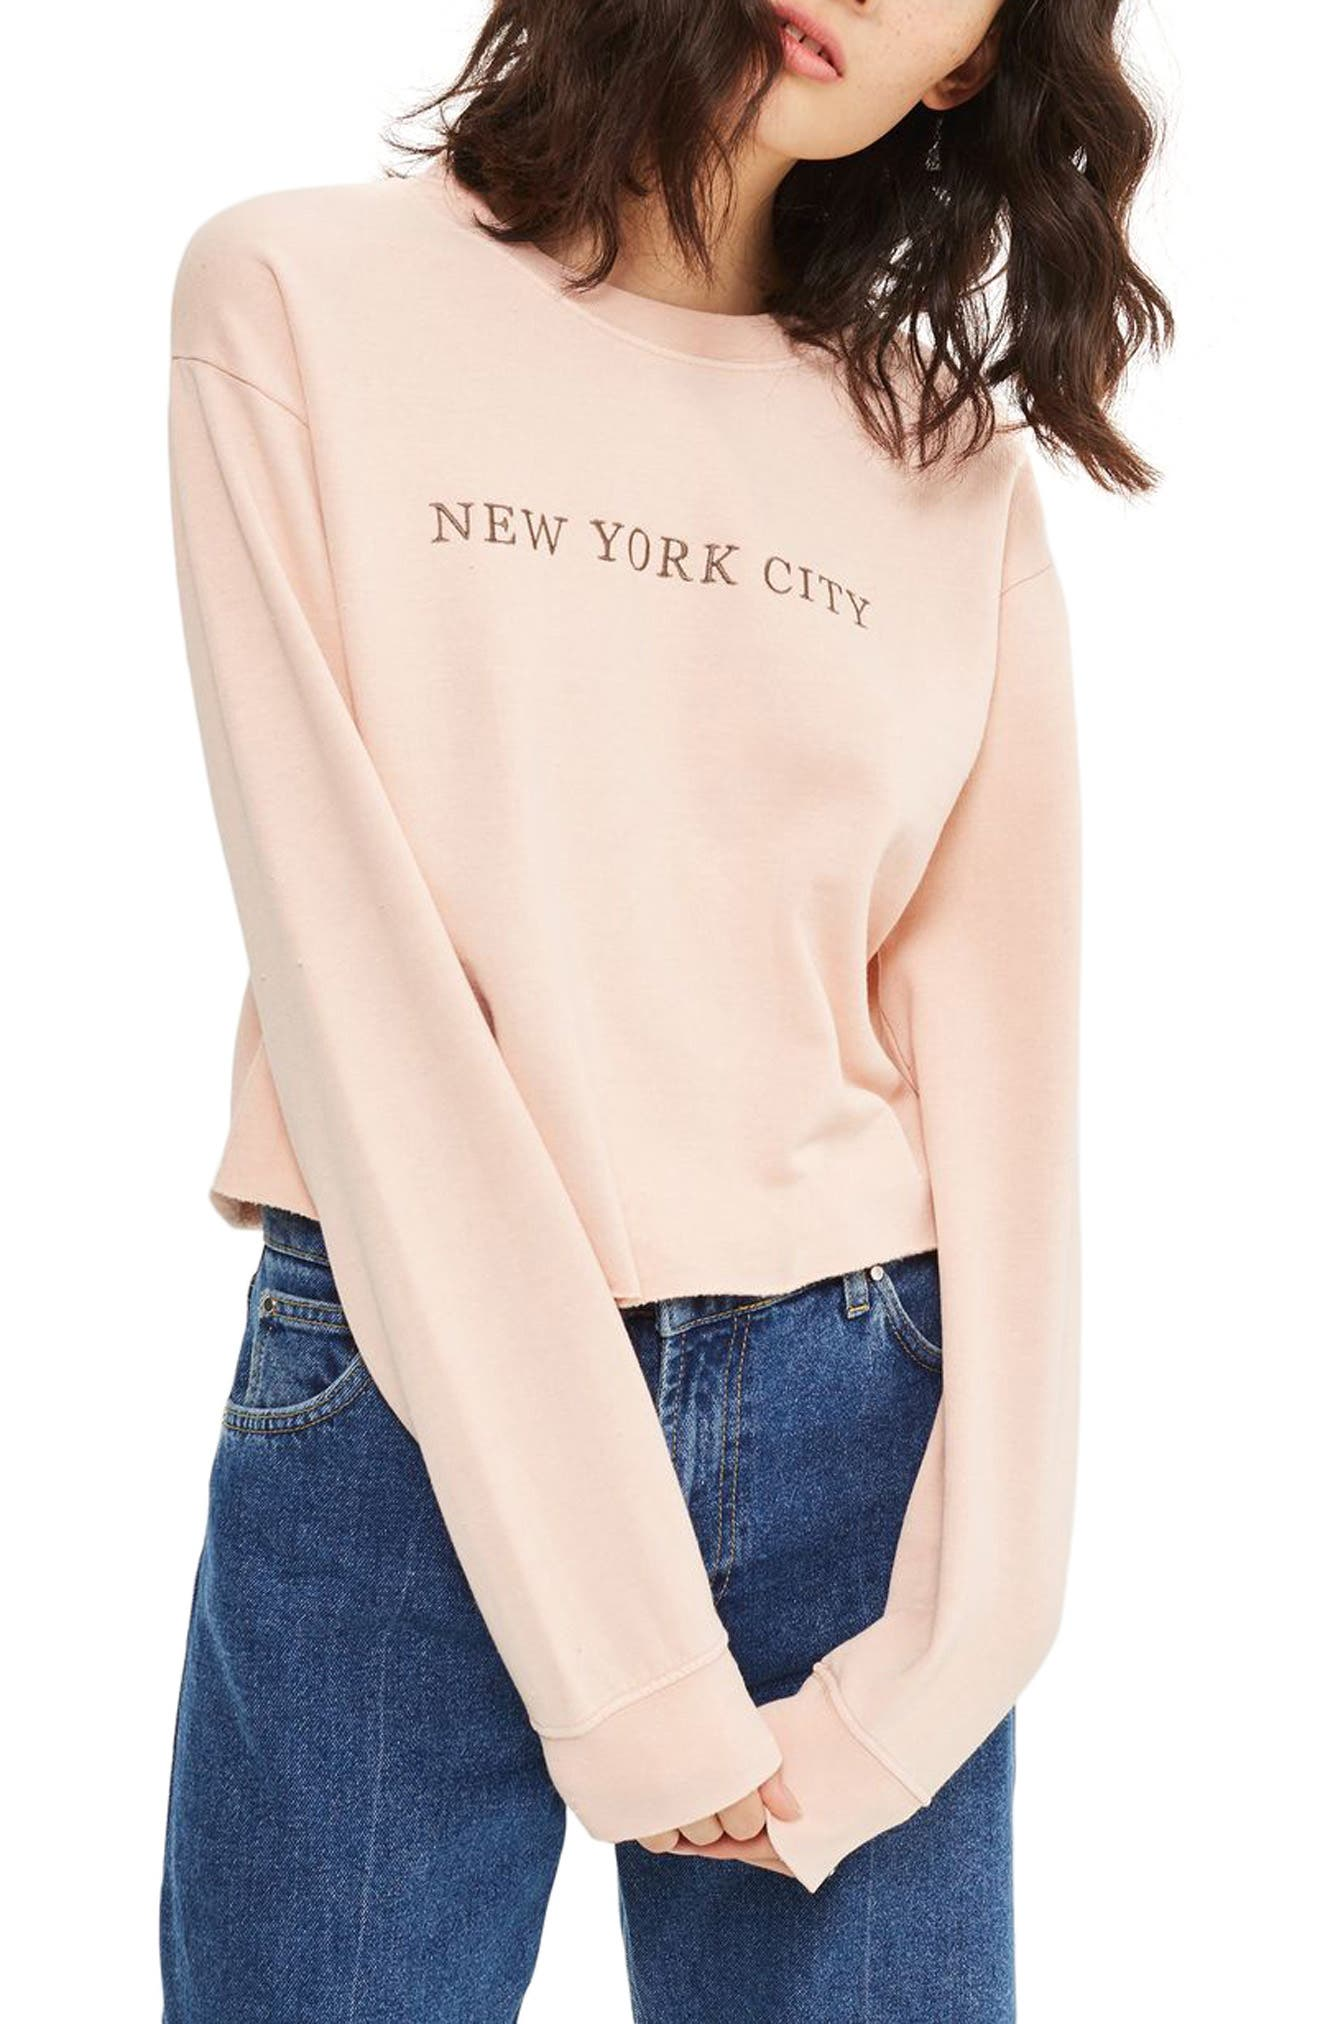 New York City Embroidered Sweatshirt,                             Alternate thumbnail 4, color,                             Pink